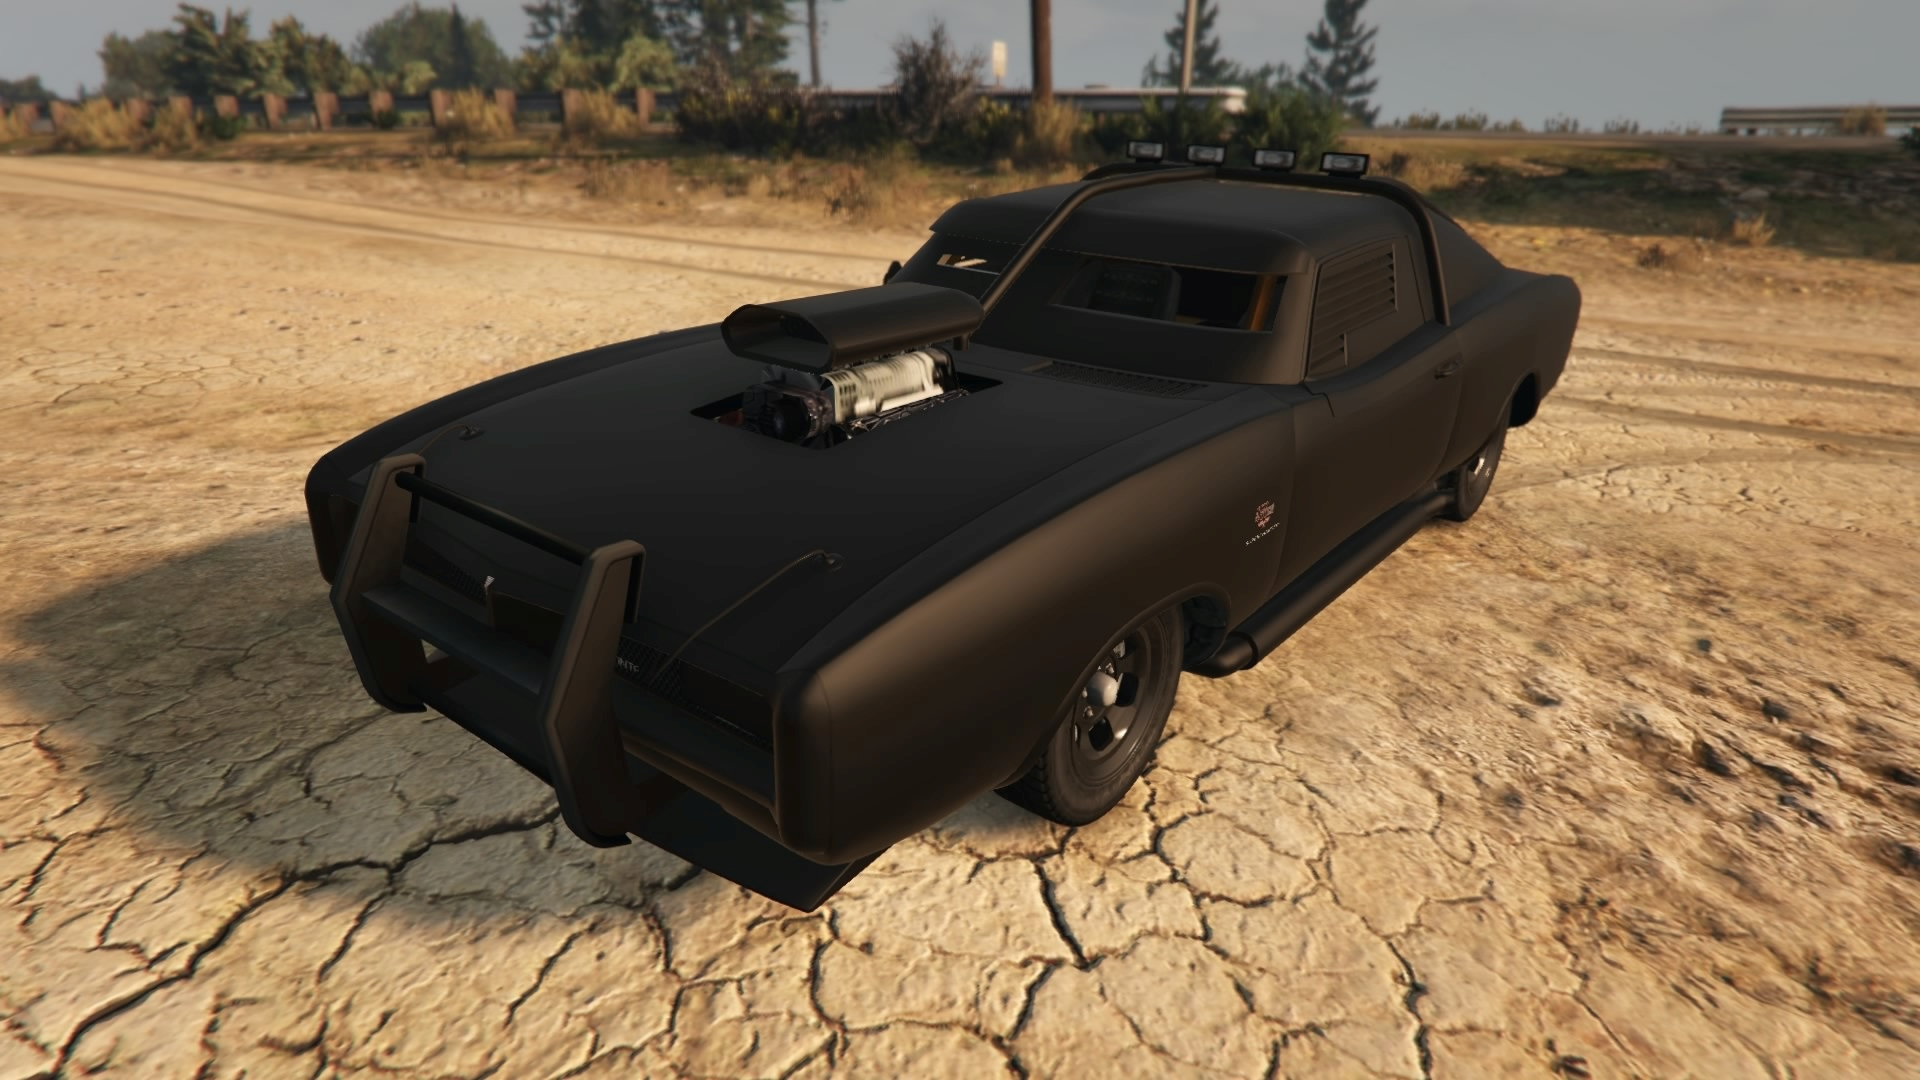 33525 Gta V Z Type moreover I have been having so much fun with the duke besides Hidden Cars Gta 5 Ps4 furthermore Gta V Intro Tips And Tricks Cheats Sys Req Walkthrough Cars And Lot More together with Gta 5 Cars. on o car location gta 5 duke